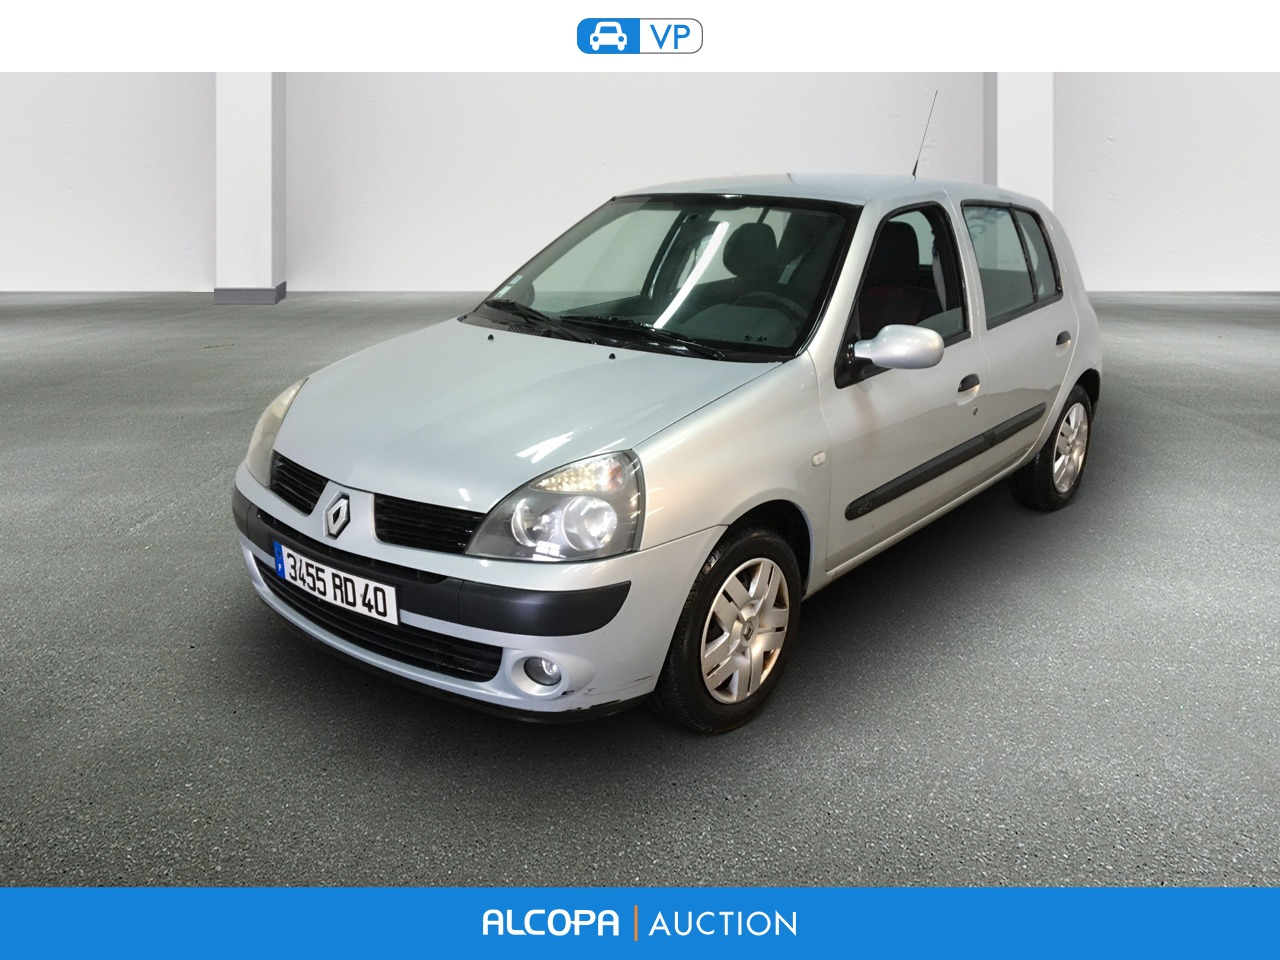 renault clio 12 2003 12 2004 clio 1 5 dci 65 extr me alcopa auction. Black Bedroom Furniture Sets. Home Design Ideas